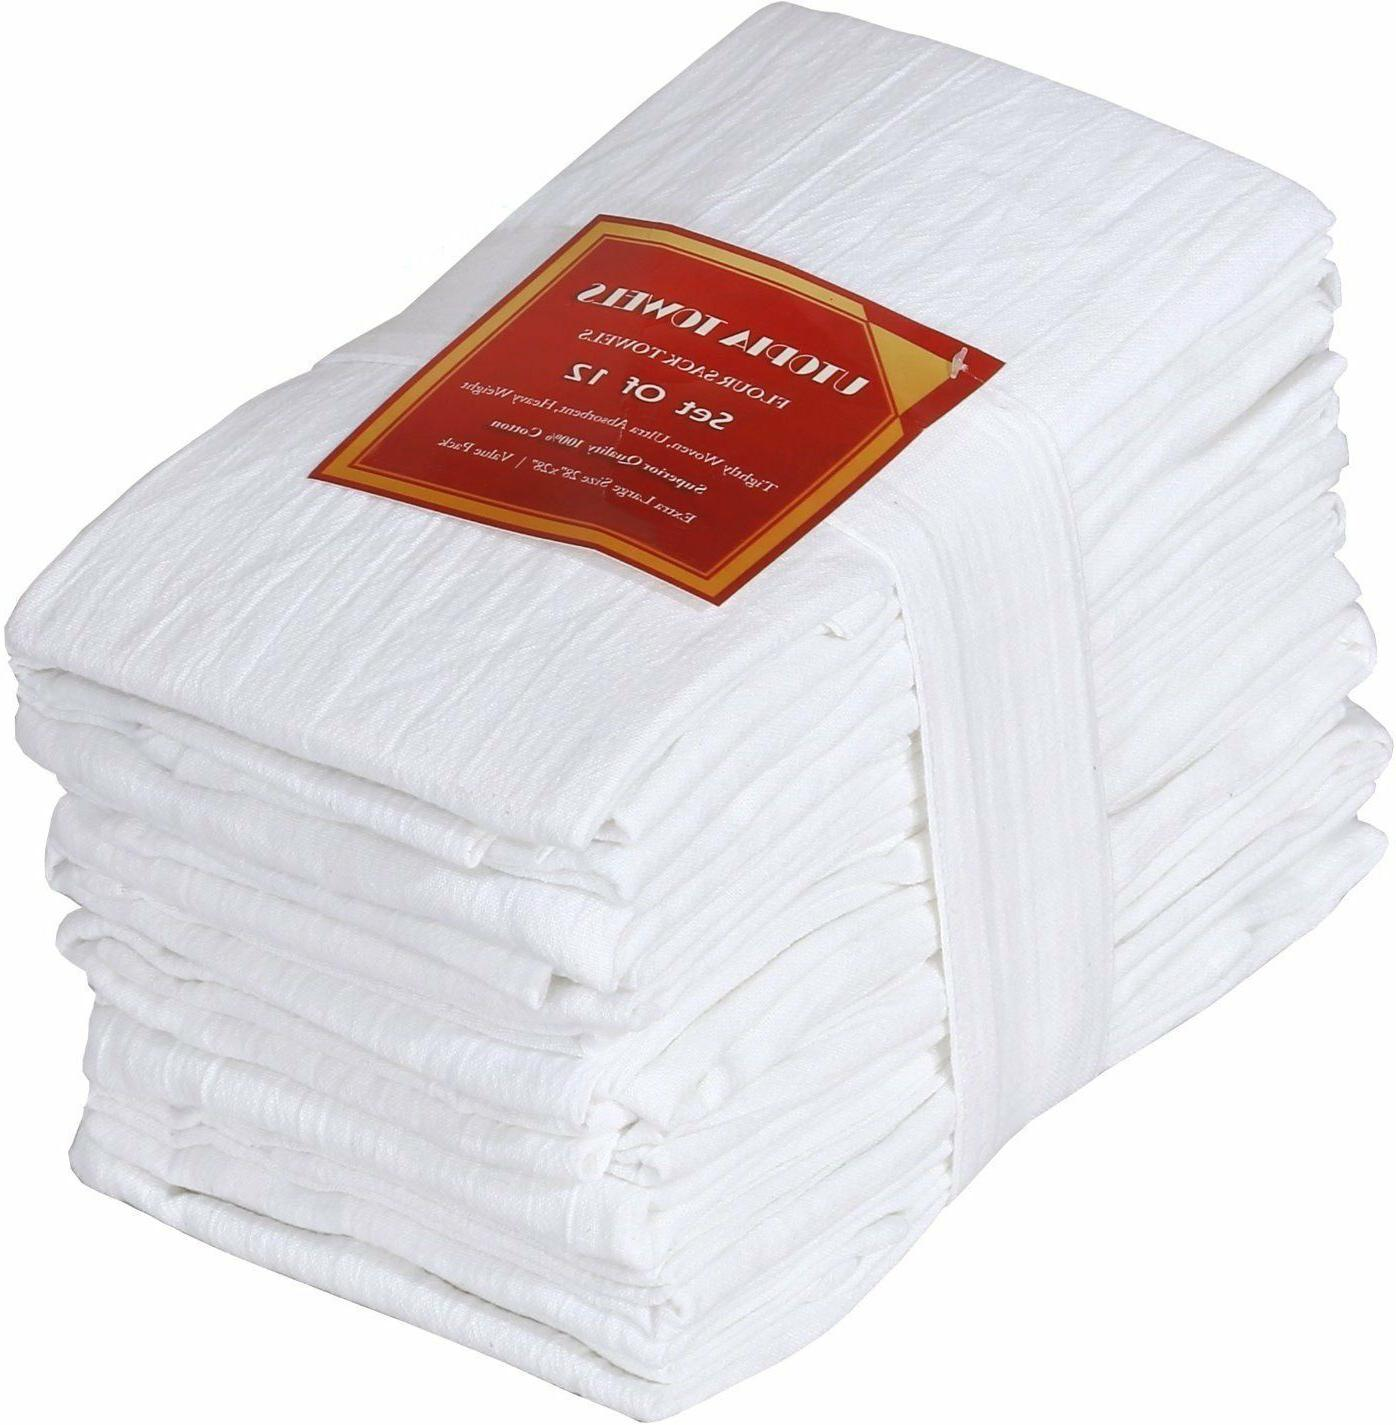 28 x 28 flour sack towels cotton